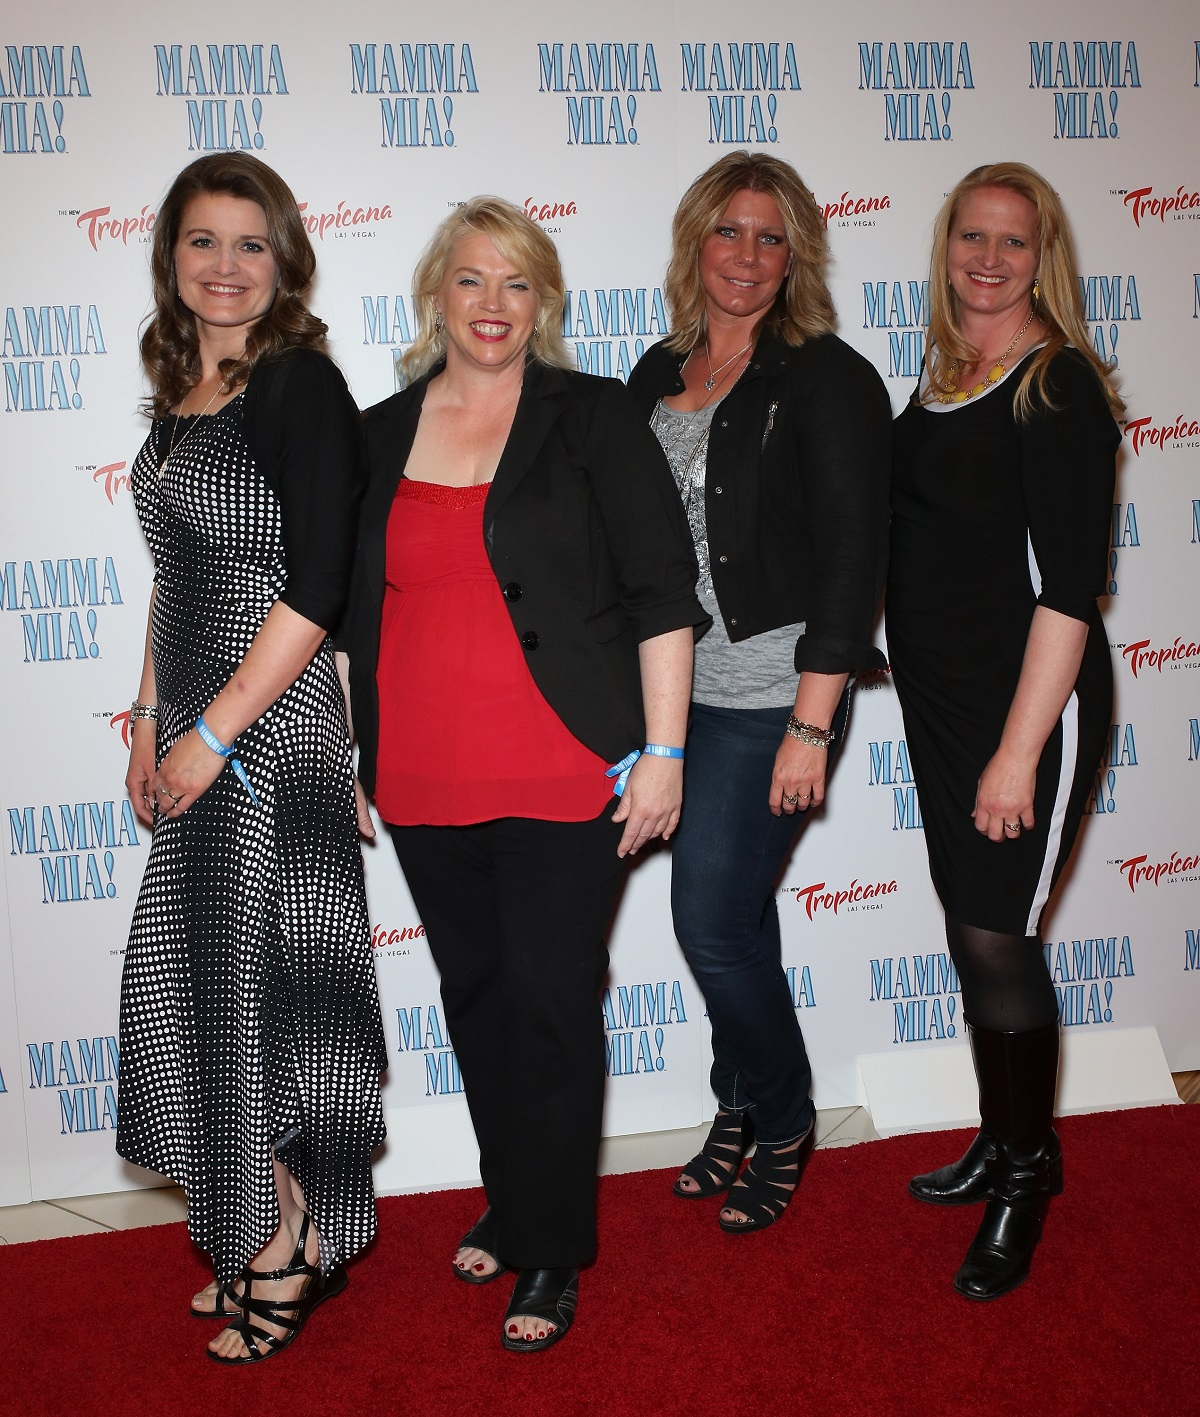 "Robyn Brown, Janelle Brown Meri Brown and Christine Brown from ""Sister Wives"" arrive at the grand opening of the show ""Mamma Mia!"" at the New Tropicana Las Vegas on May 16, 2014 in Las Vegas, Nevada."